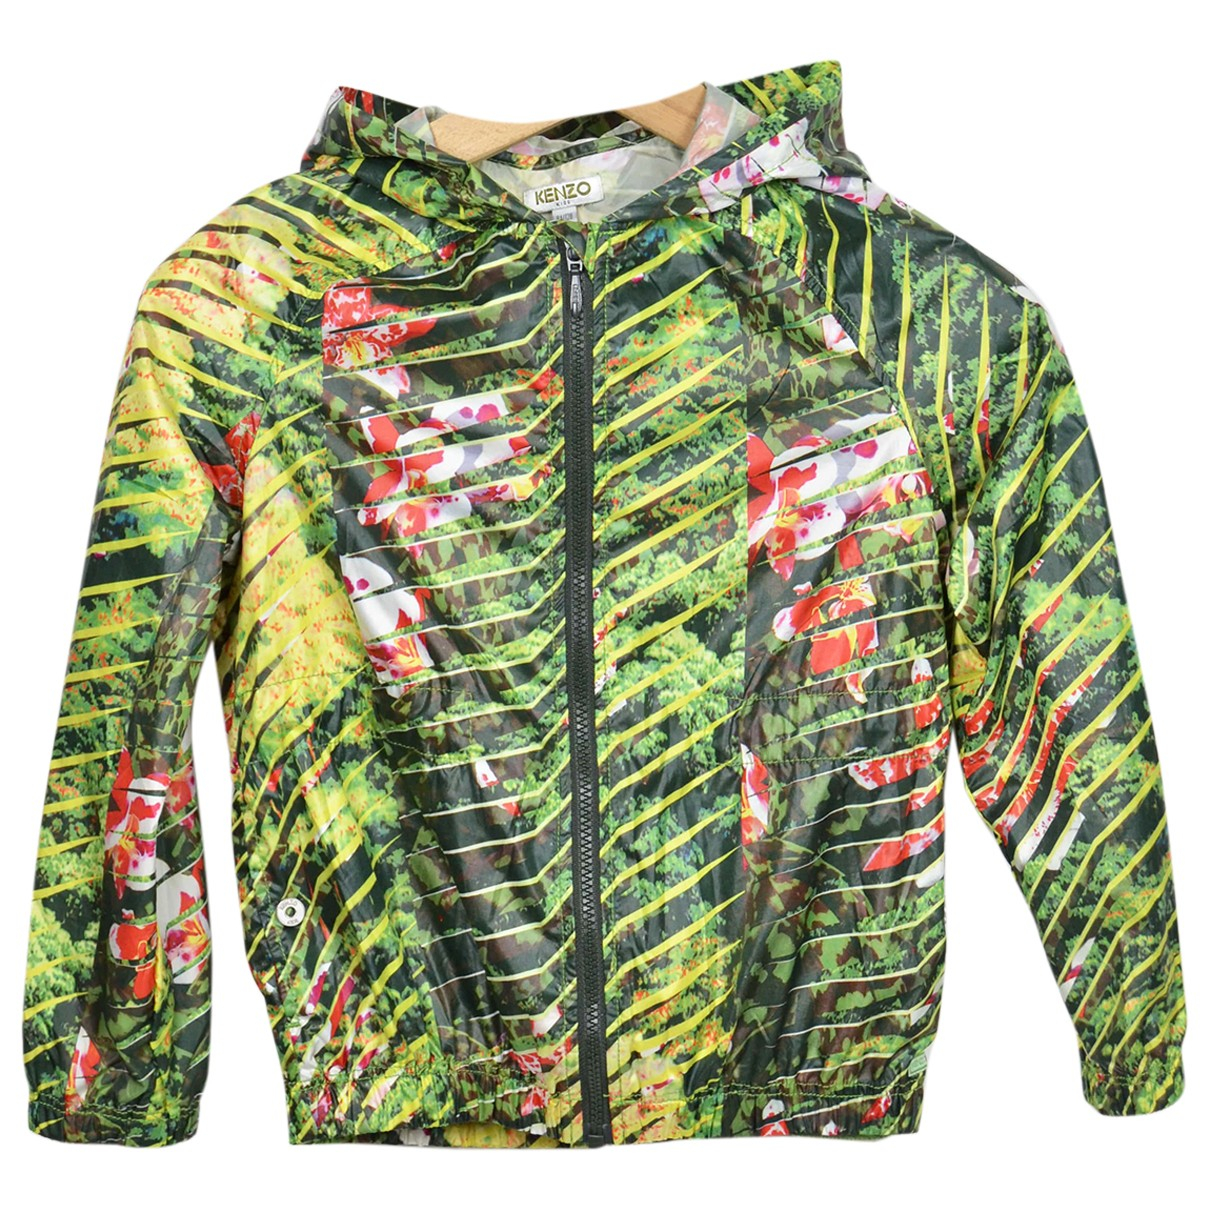 Kenzo N Green jacket & coat for Kids 8 years - up to 128cm FR